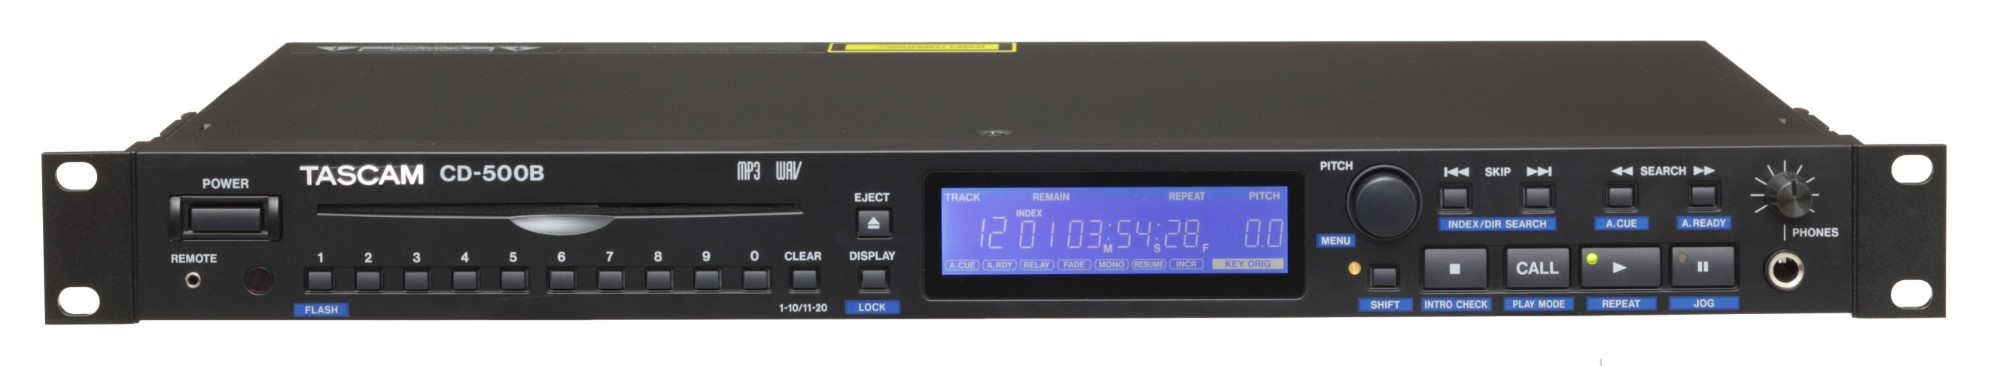 Tascam CD-500B CD player Black